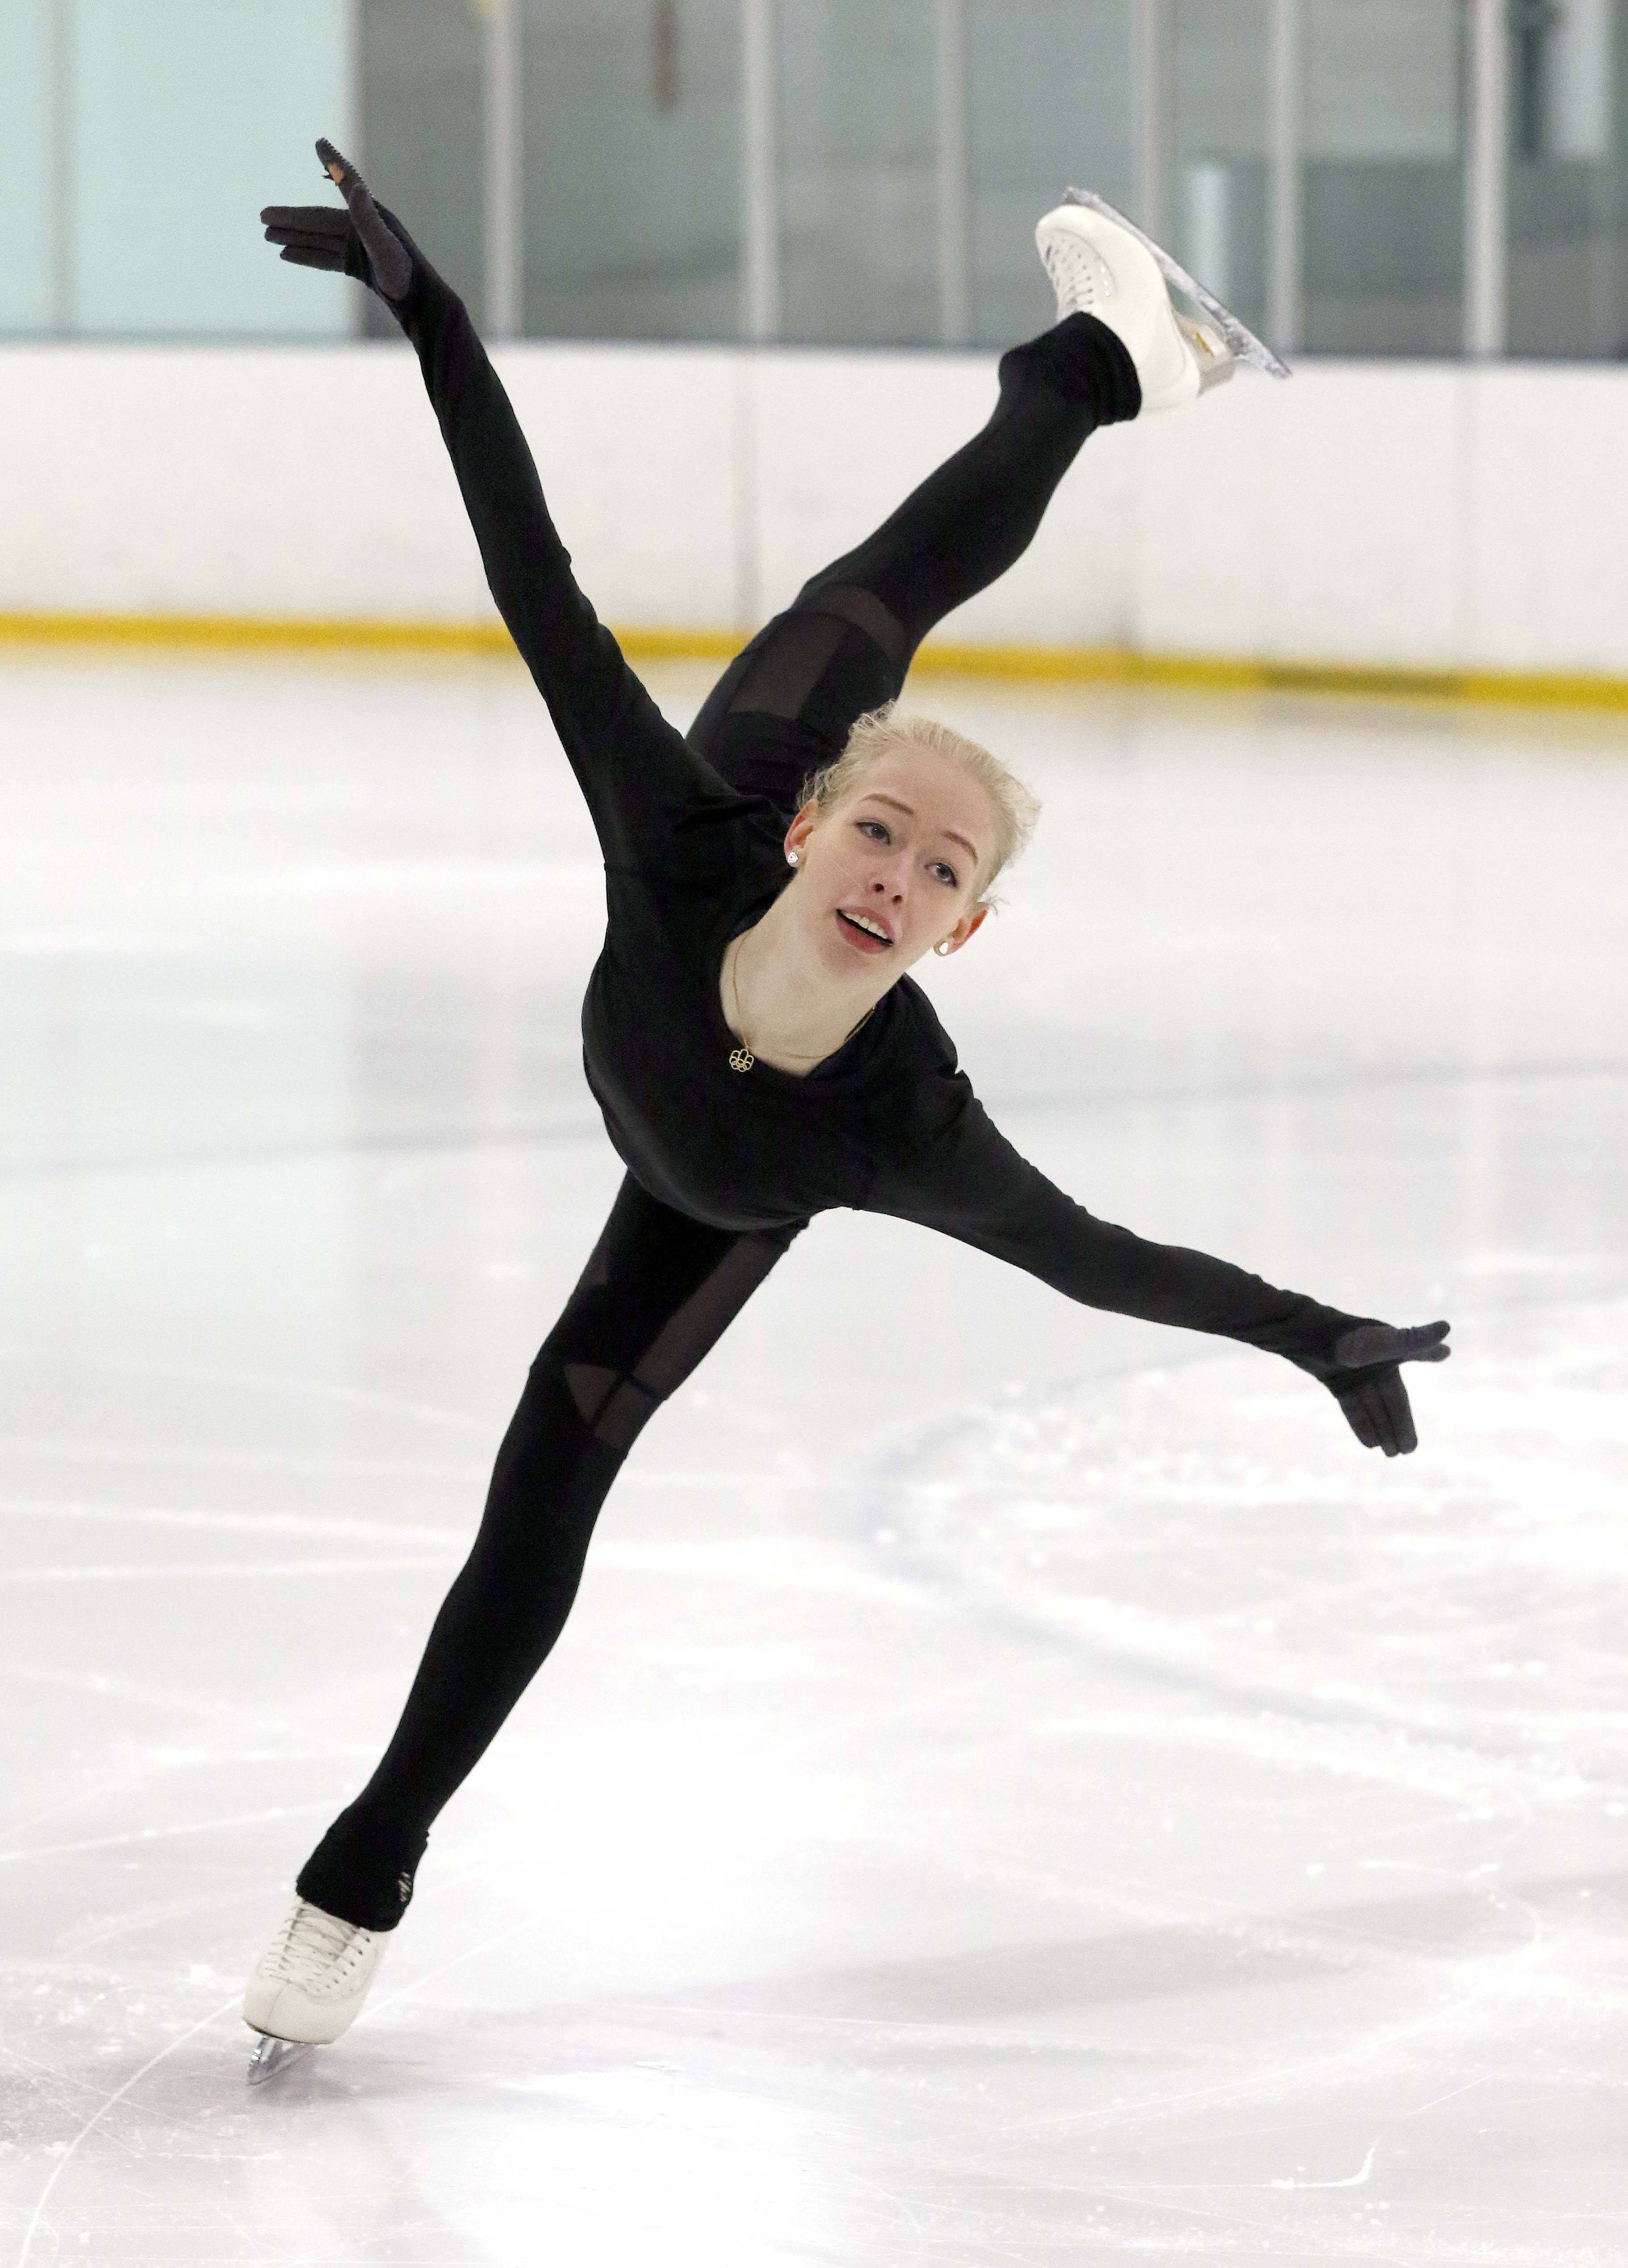 Olympic figure skater Bradie Tennell back in Buffalo Grove getting ready for games